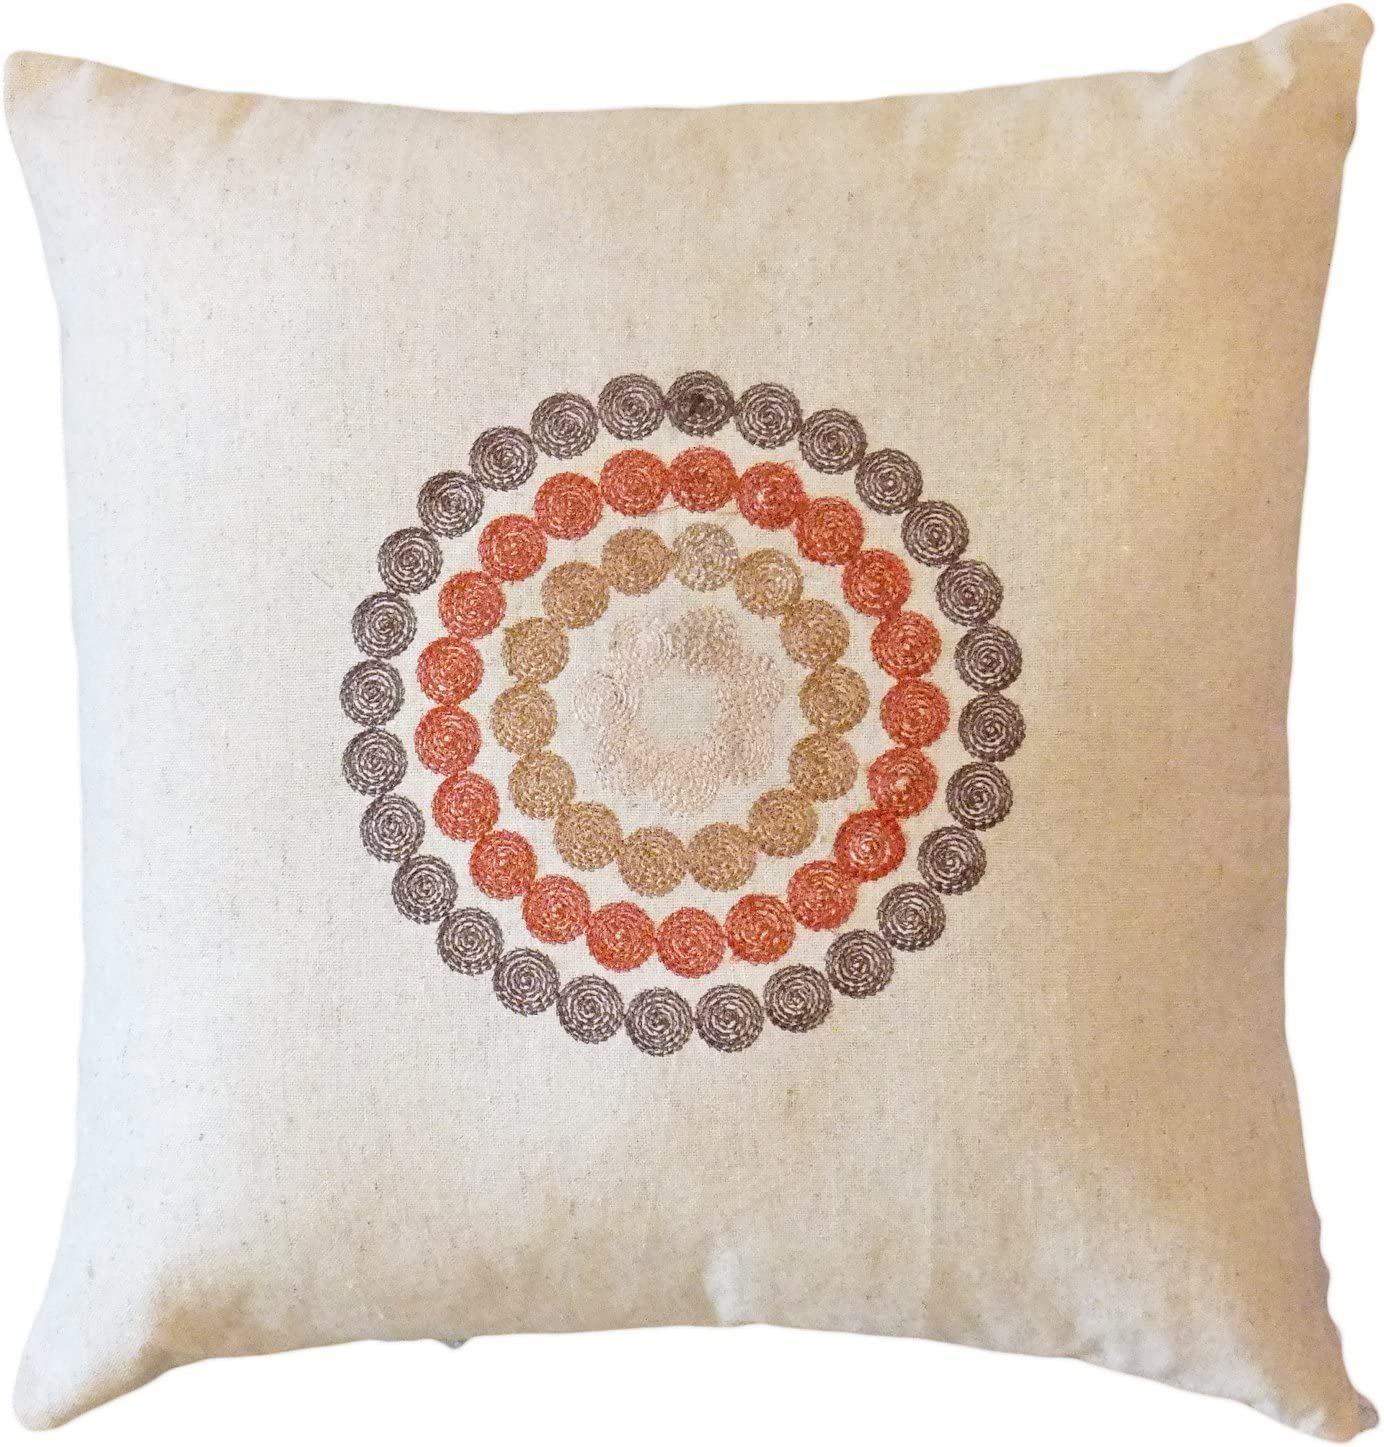 Amazon Com Blue Dolphin Decorative Embroidered Circles Throw Pillow Cover 17 Brown Home Kitchen